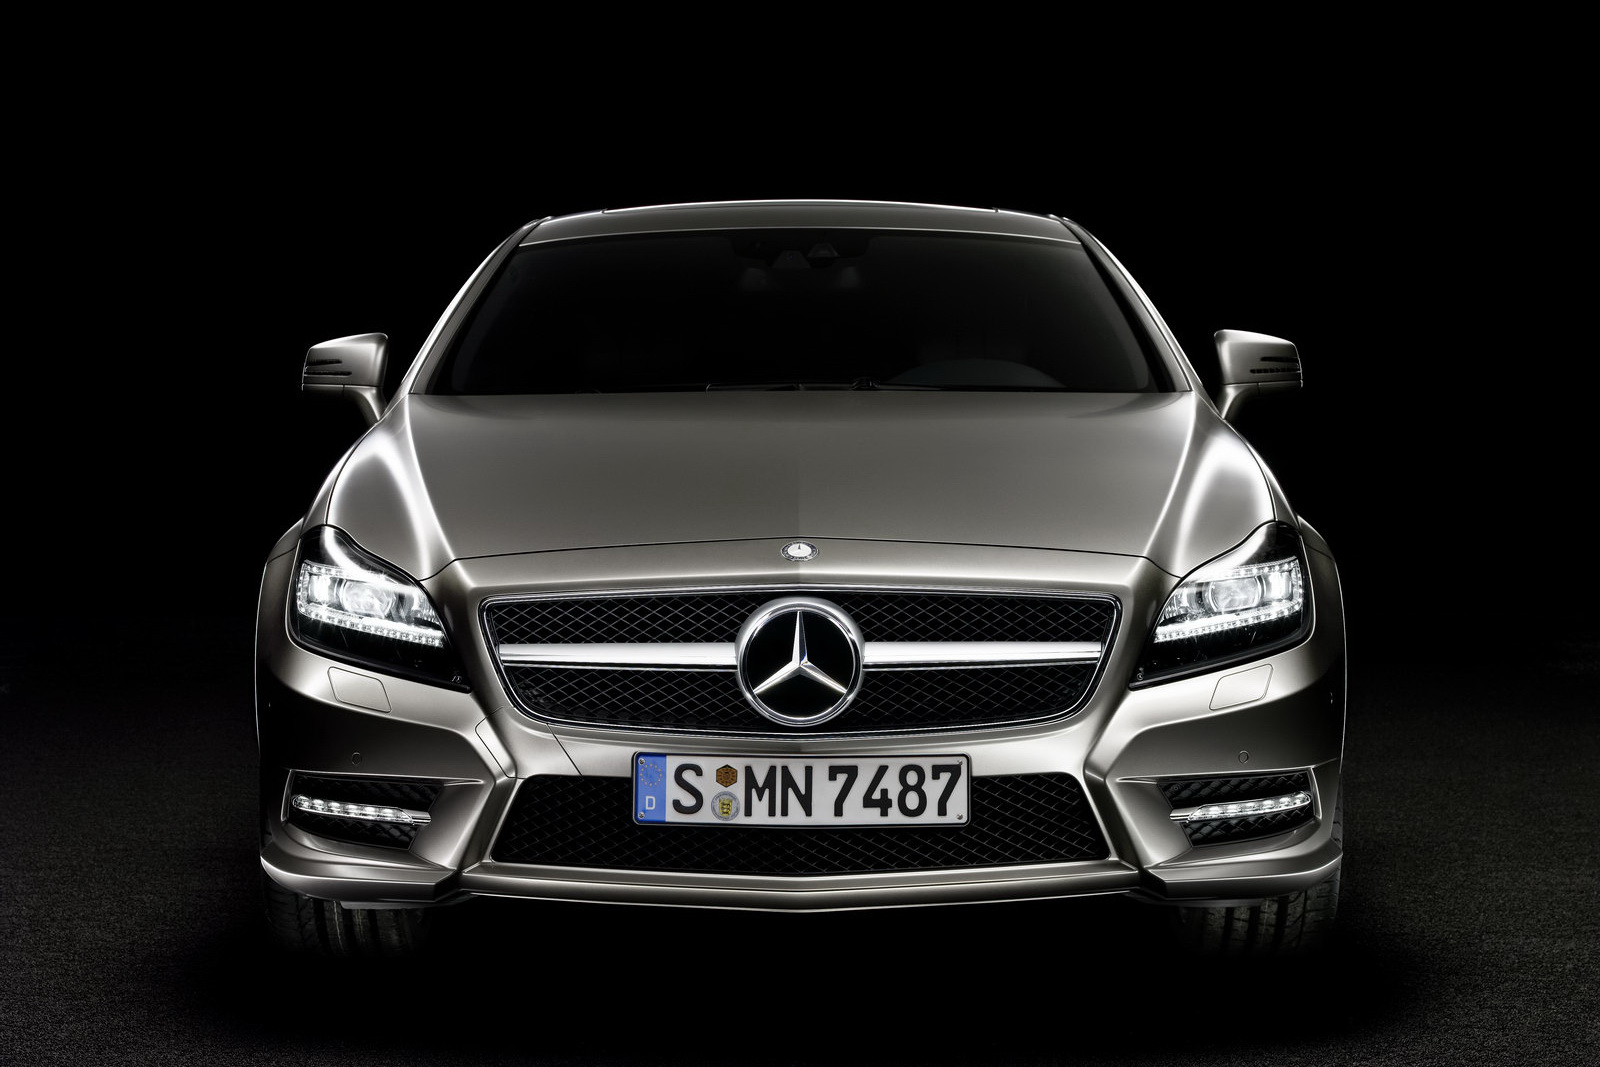 2011 mercedes benz cls350 photos price specifications for Mercedes benz cls price